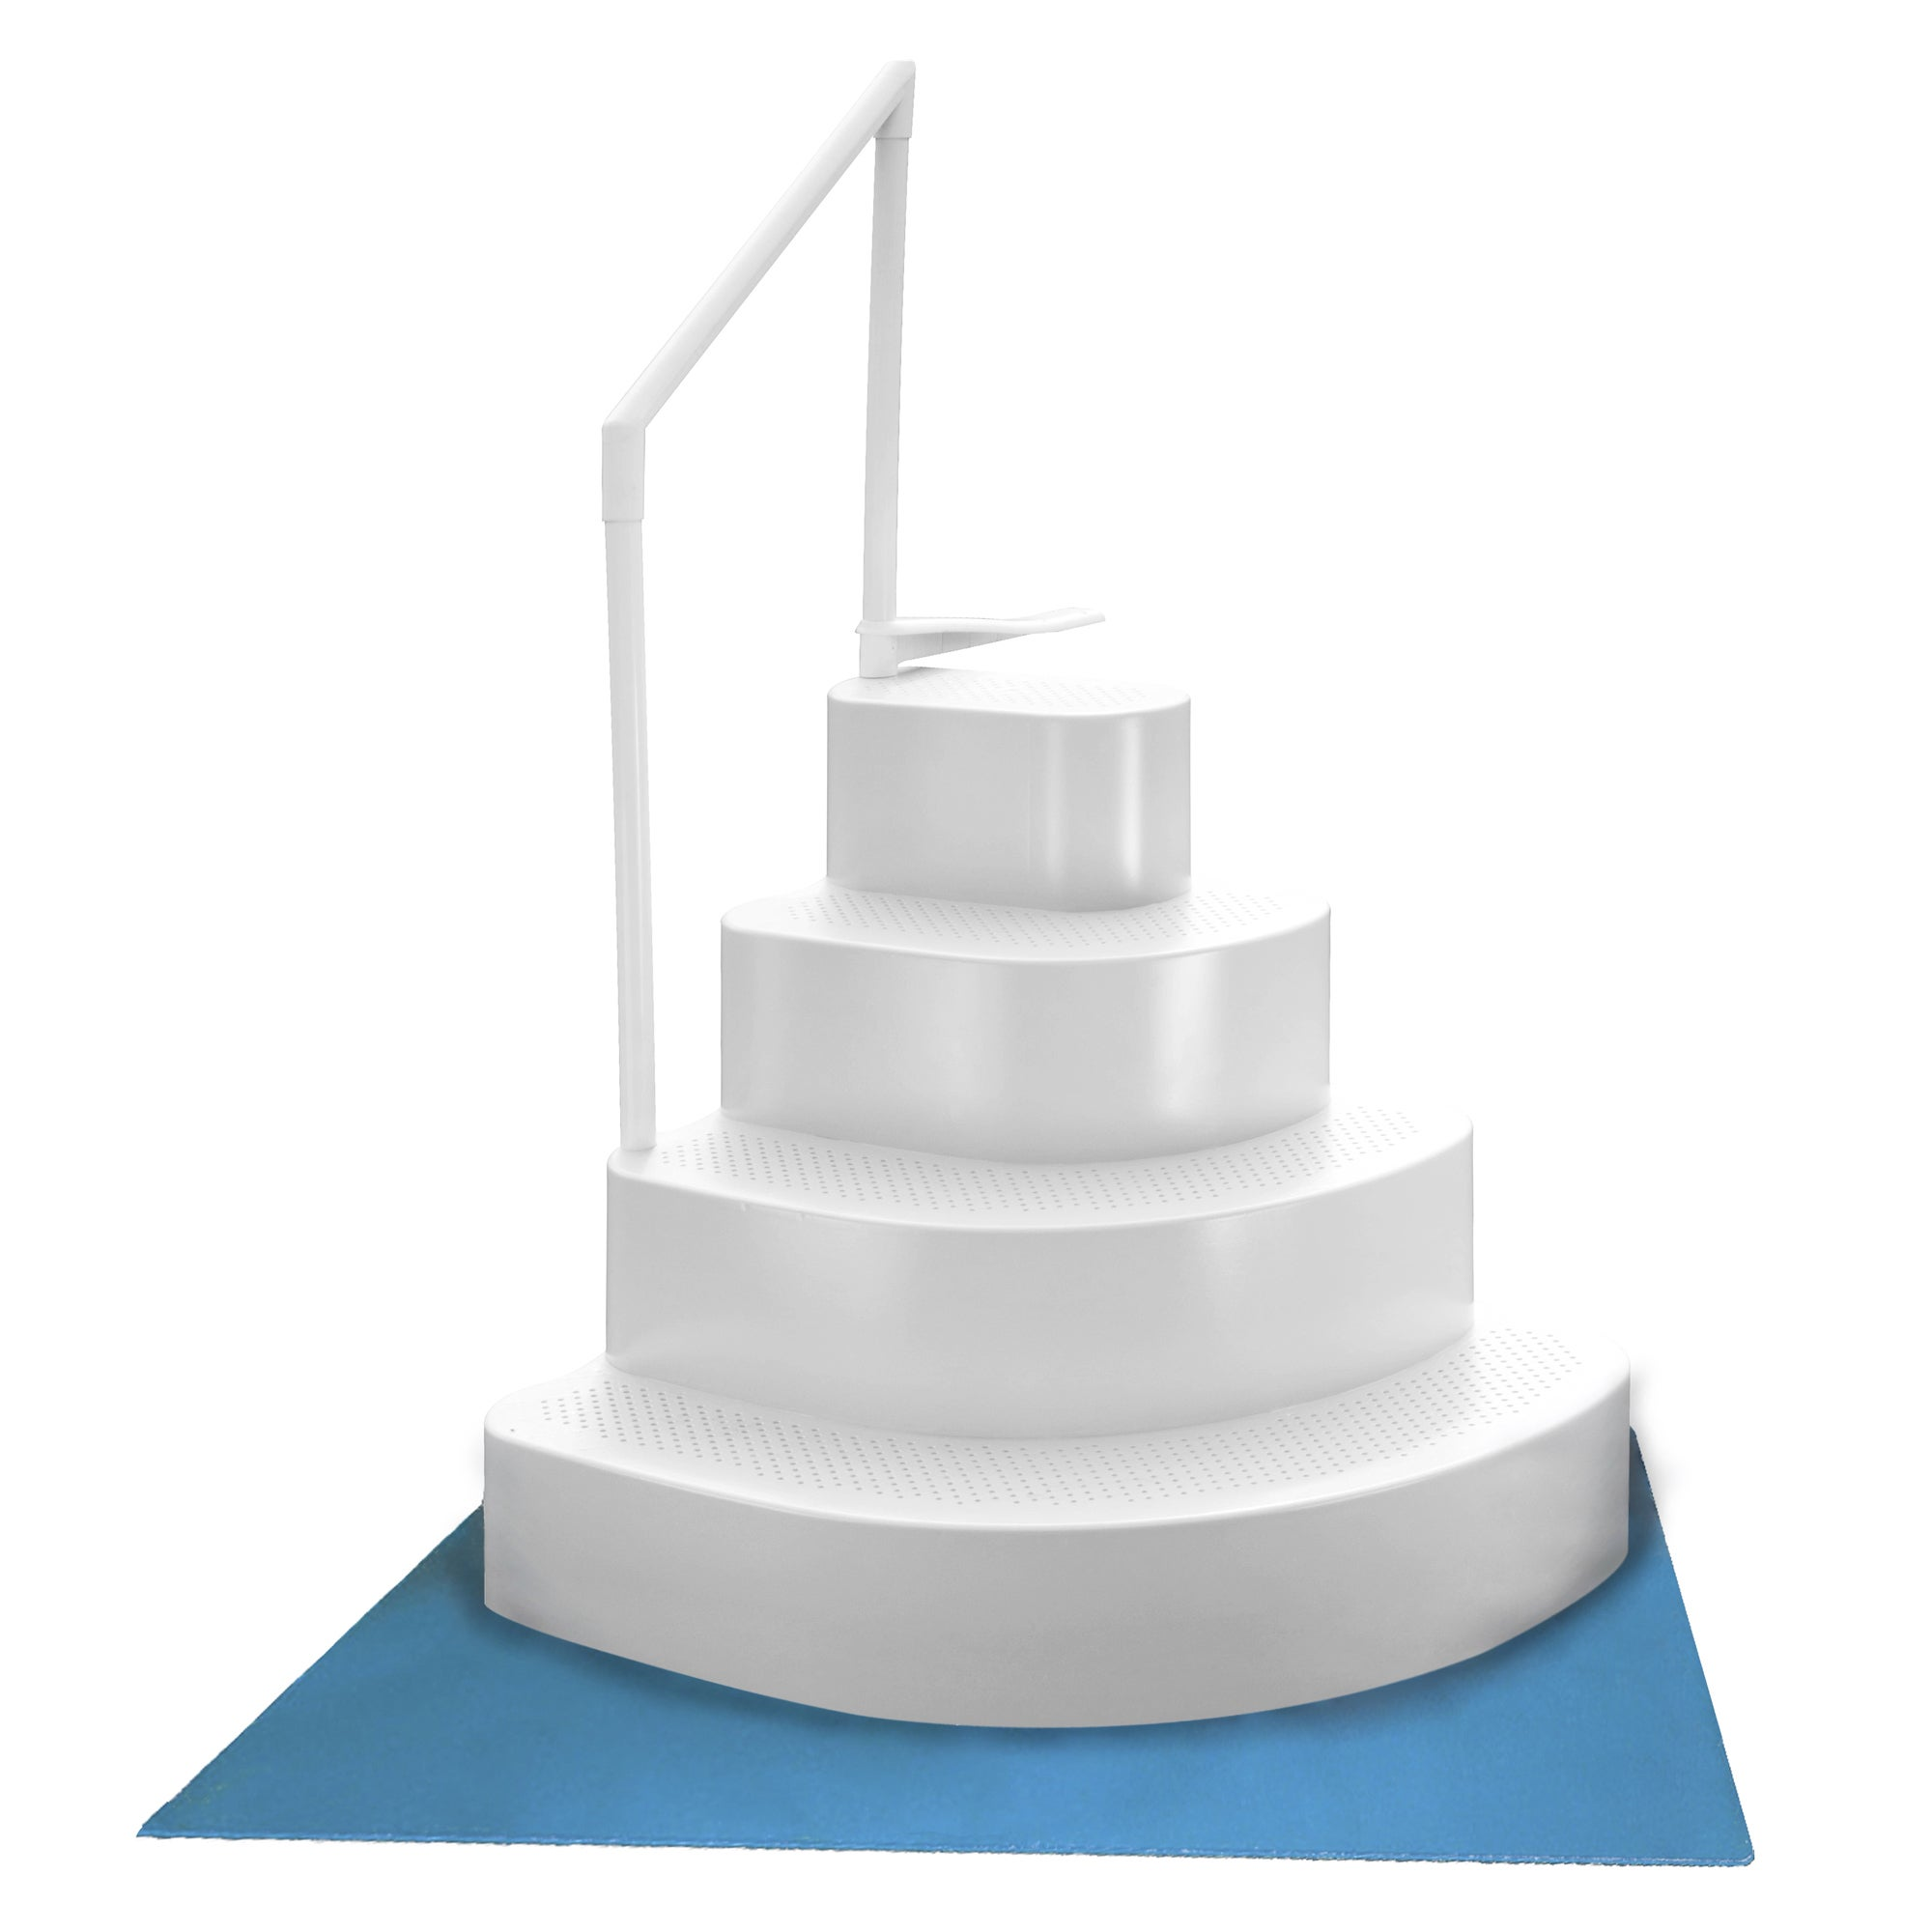 Ordinaire Shop Wedding Cake Above Ground Pool Step With Liner Pad   White   Free  Shipping Today   Overstock.com   11606731